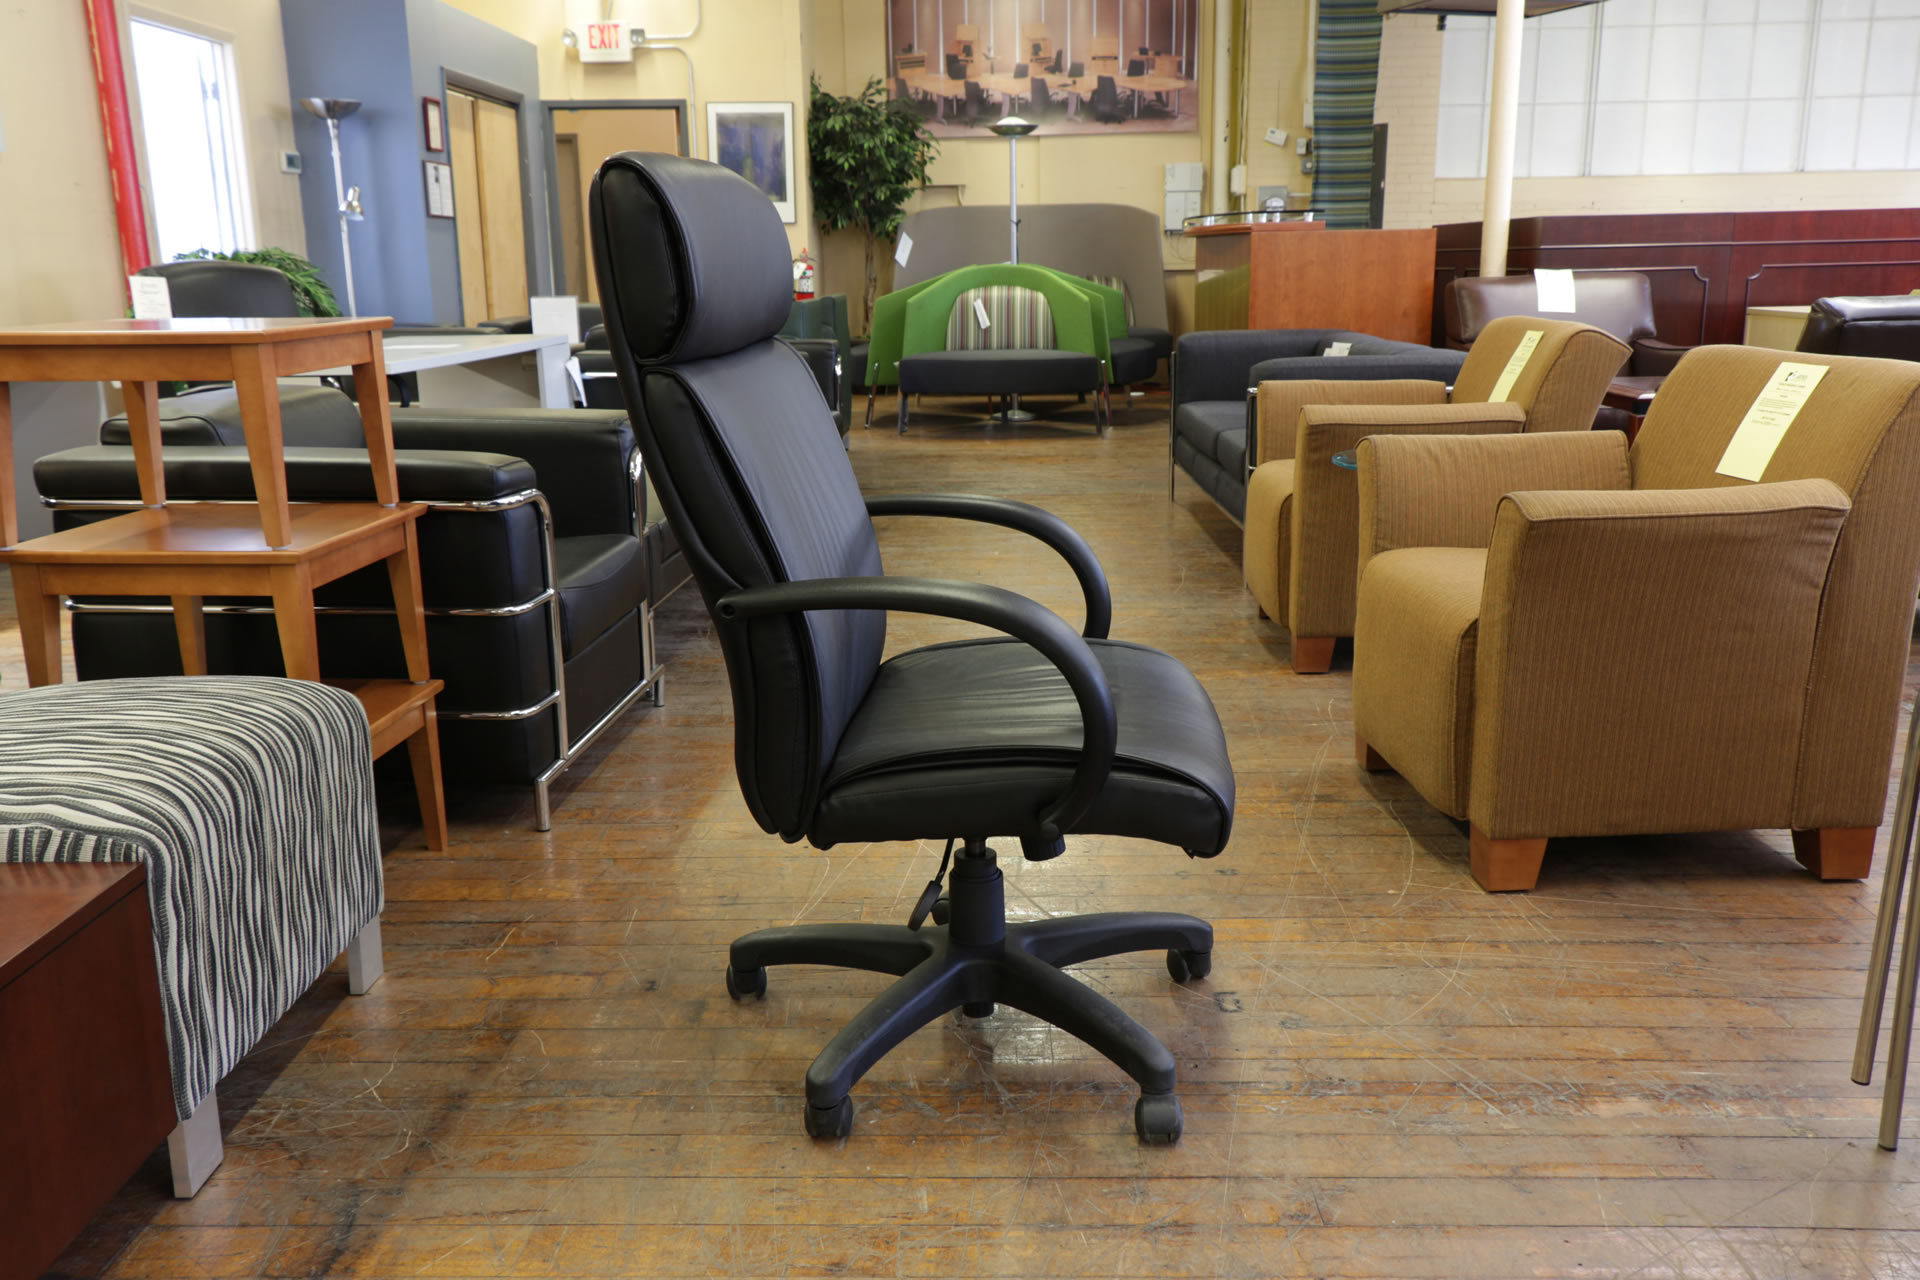 Steelcase 319 Executive High-Back Black Leather Task Chair